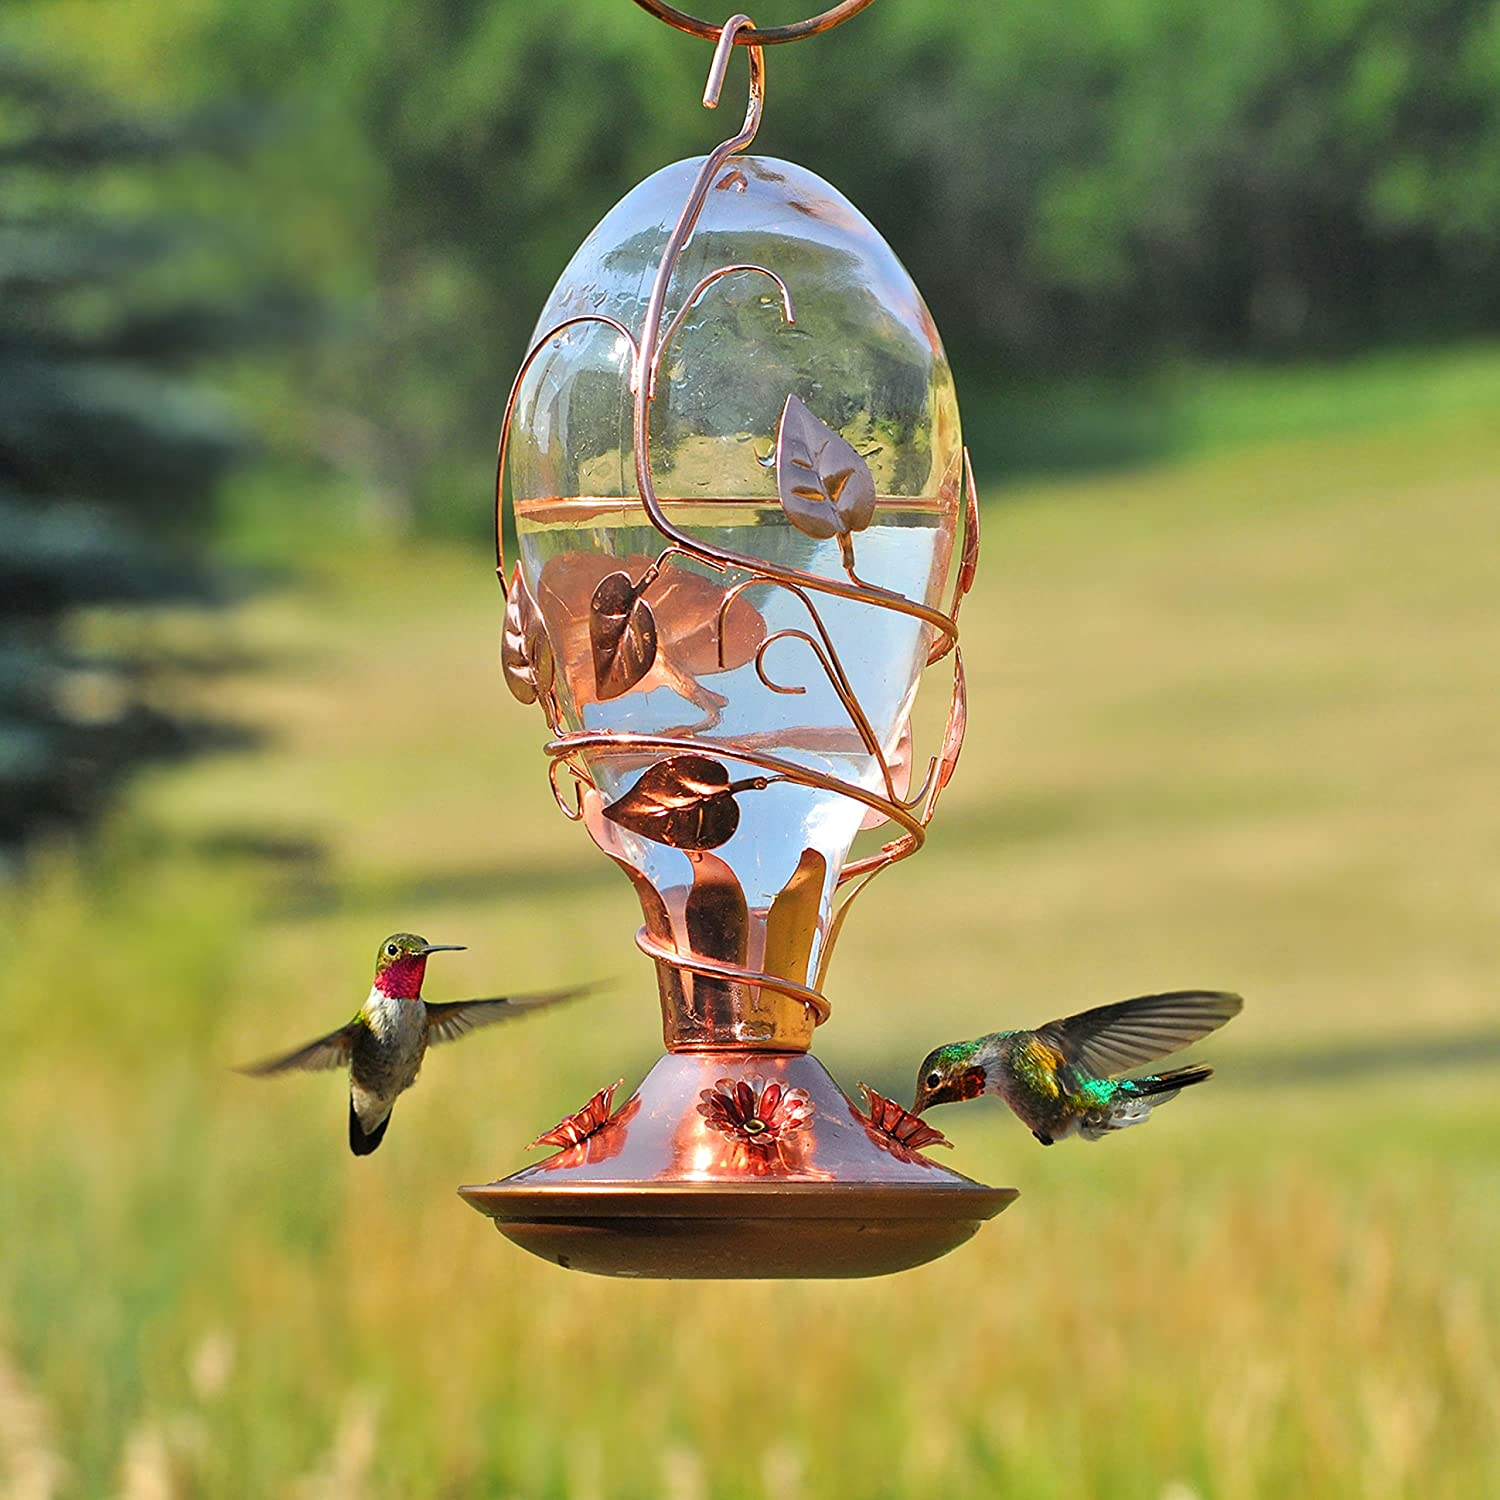 humingbird blain s guide farm istock feeder blog feeders hummingbird fleet resized